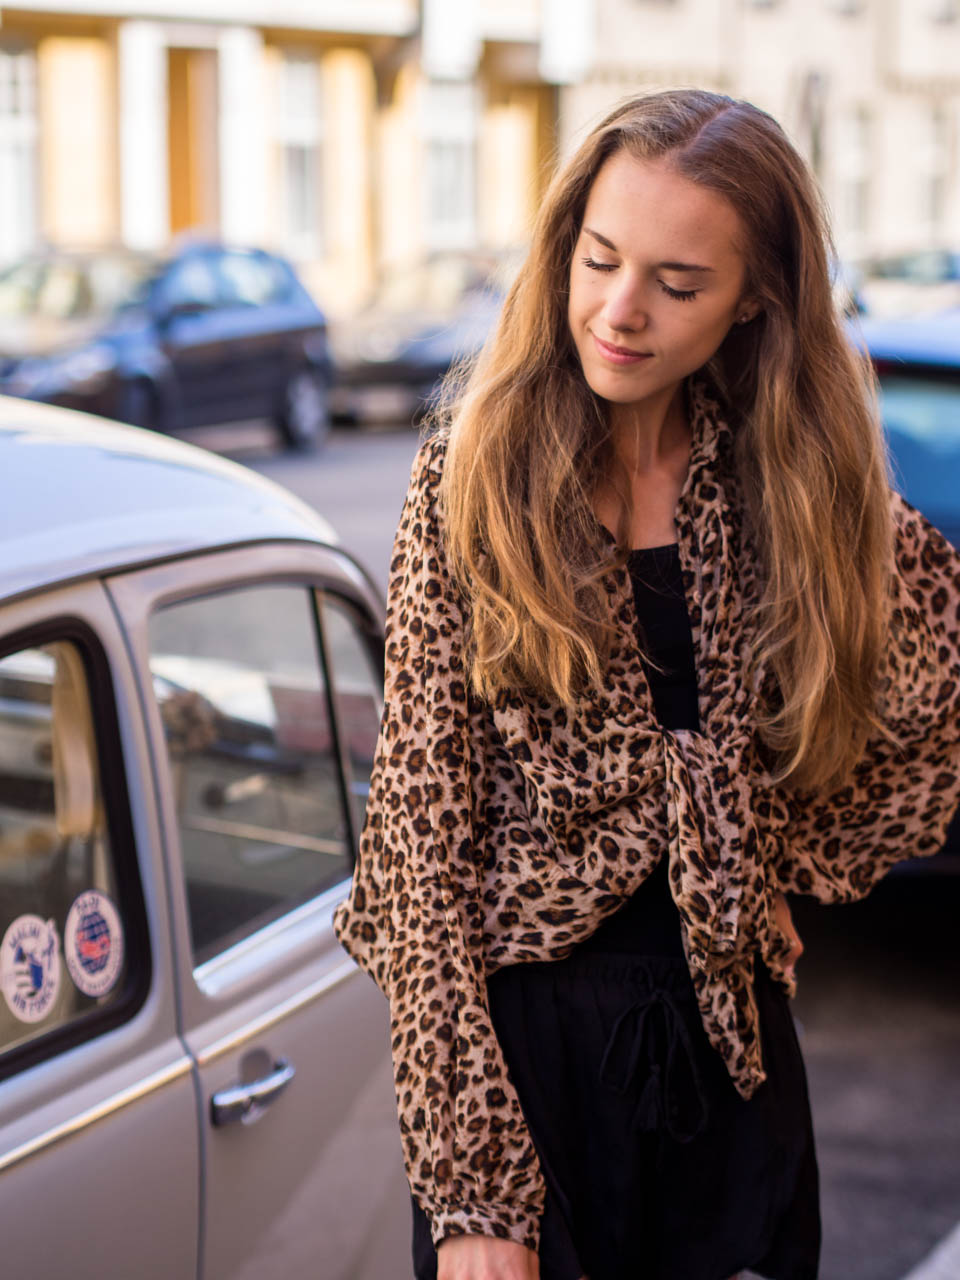 leopard-shirt-outfit-inspiration-fashion-blogger